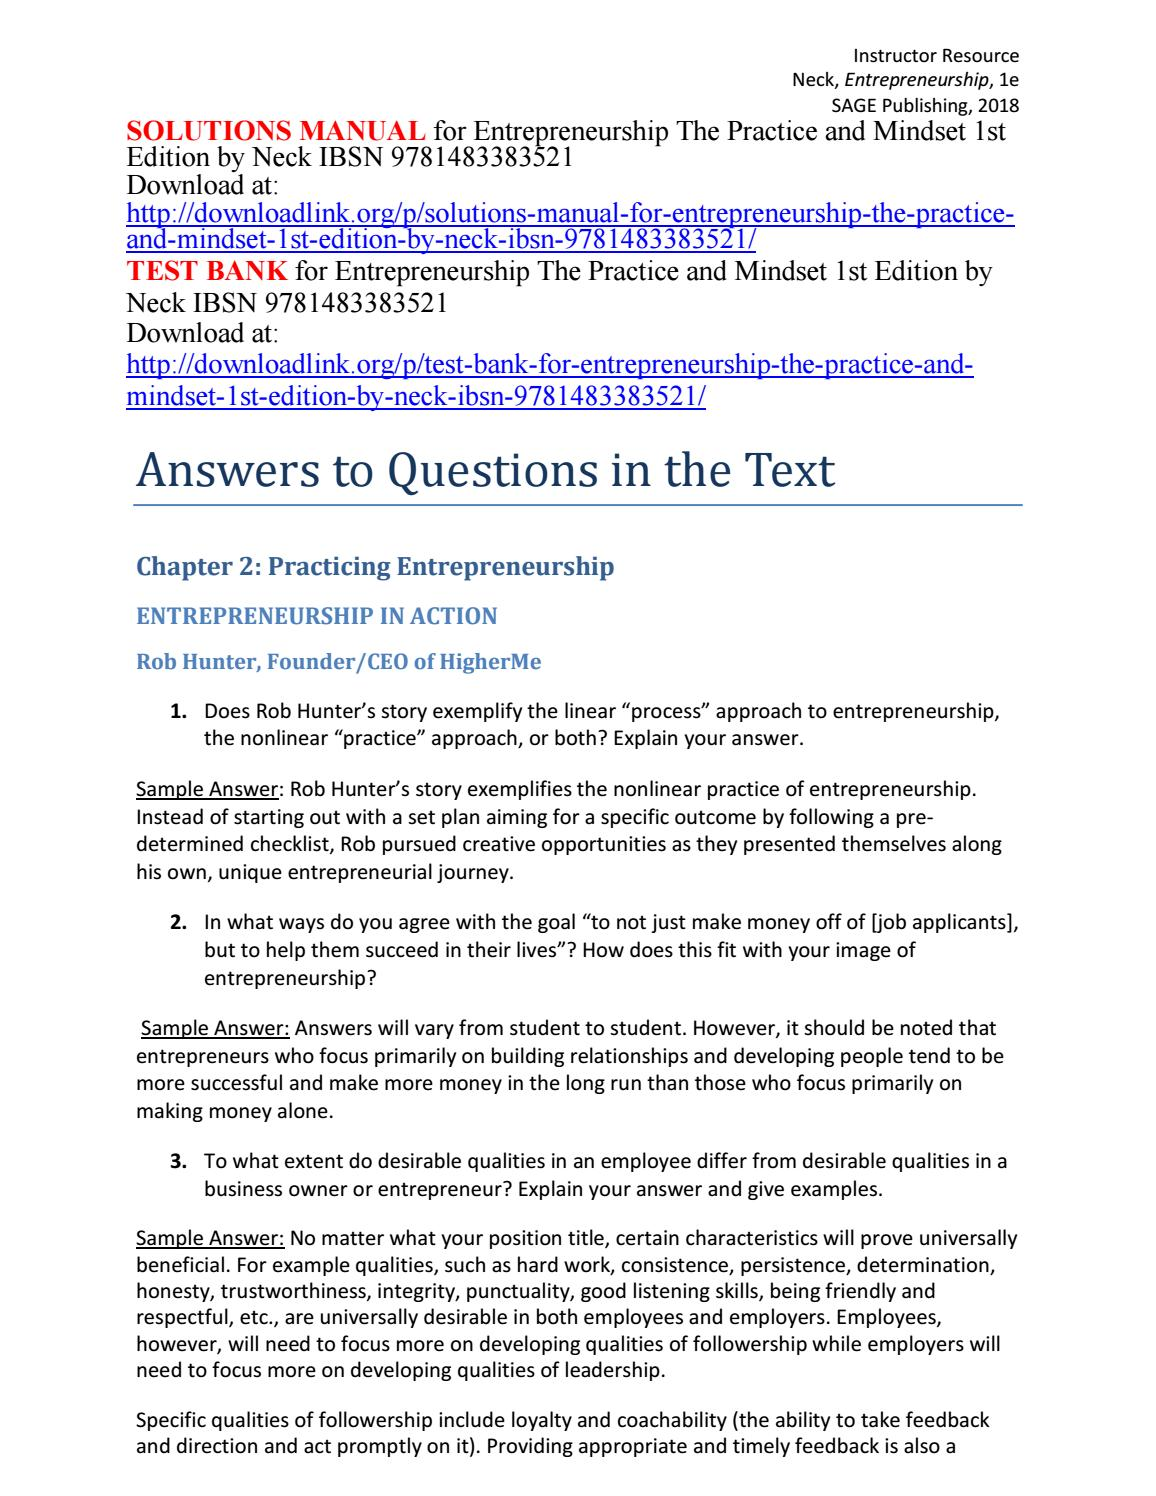 Entrepreneurial Success Checklist | Solutions Manual For Entrepreneurship The Practice And Mindset 1st